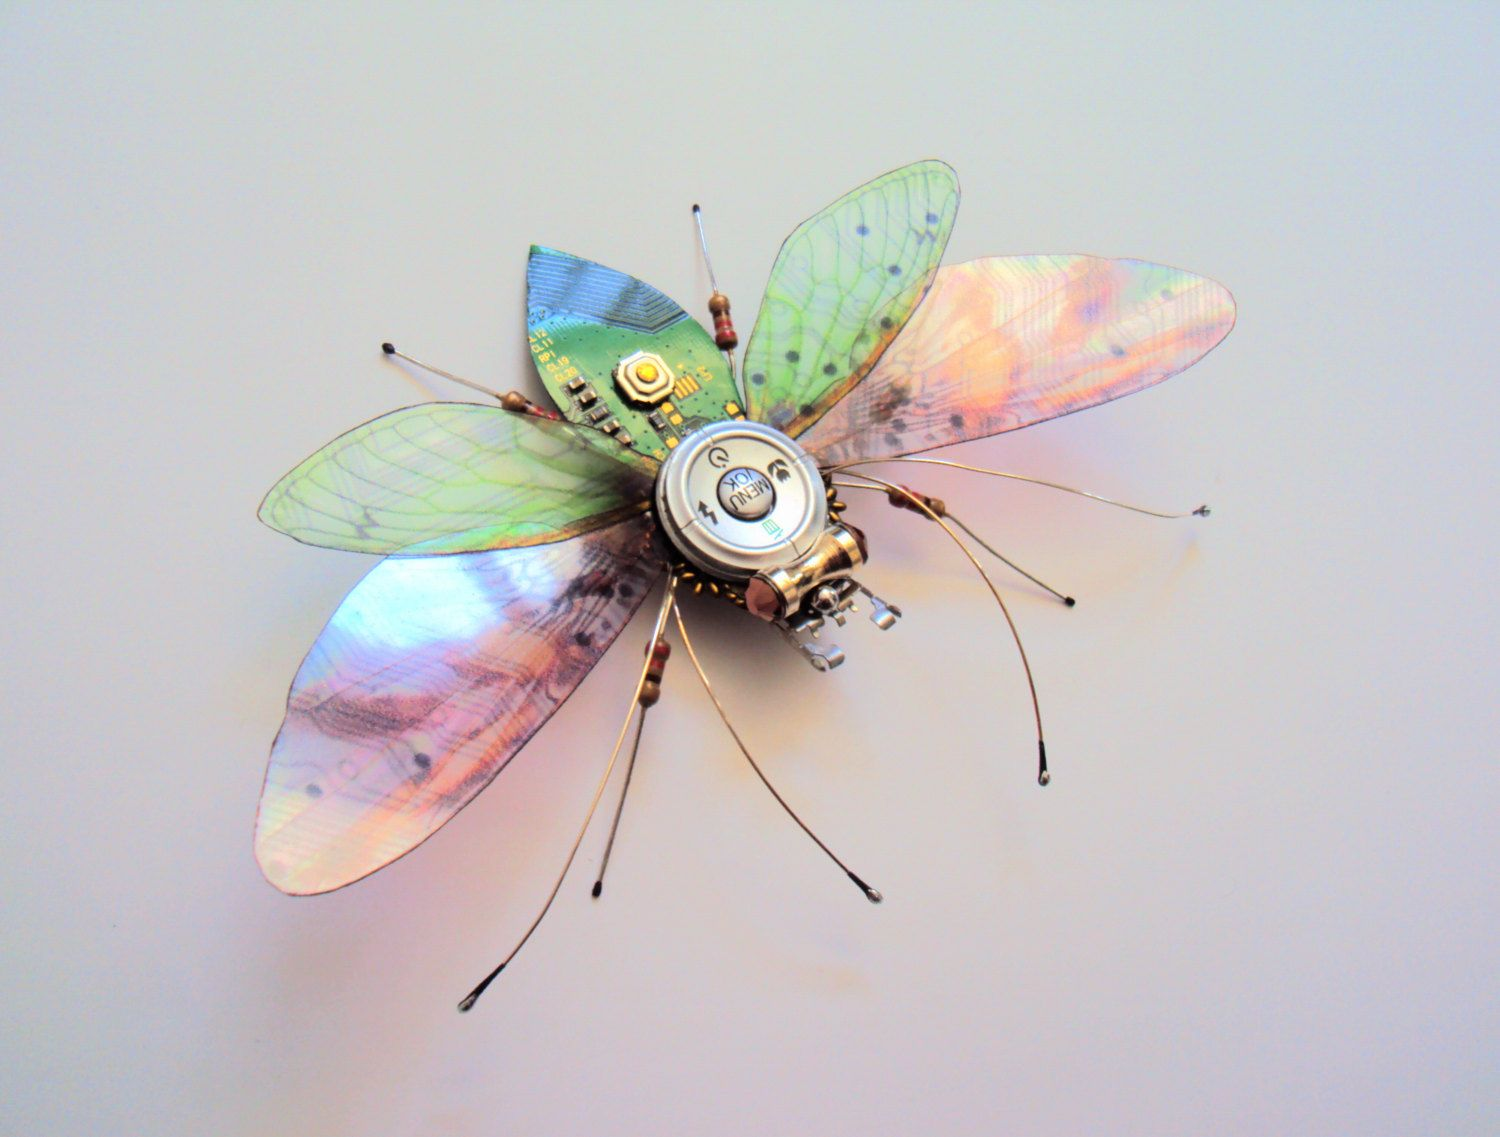 The Dainty Embellished Peach Blossom Bug Circuit Board Insect Pcb Sculptures Artist Upcycles Old Boards Into Art By Dewleaf On Etsy